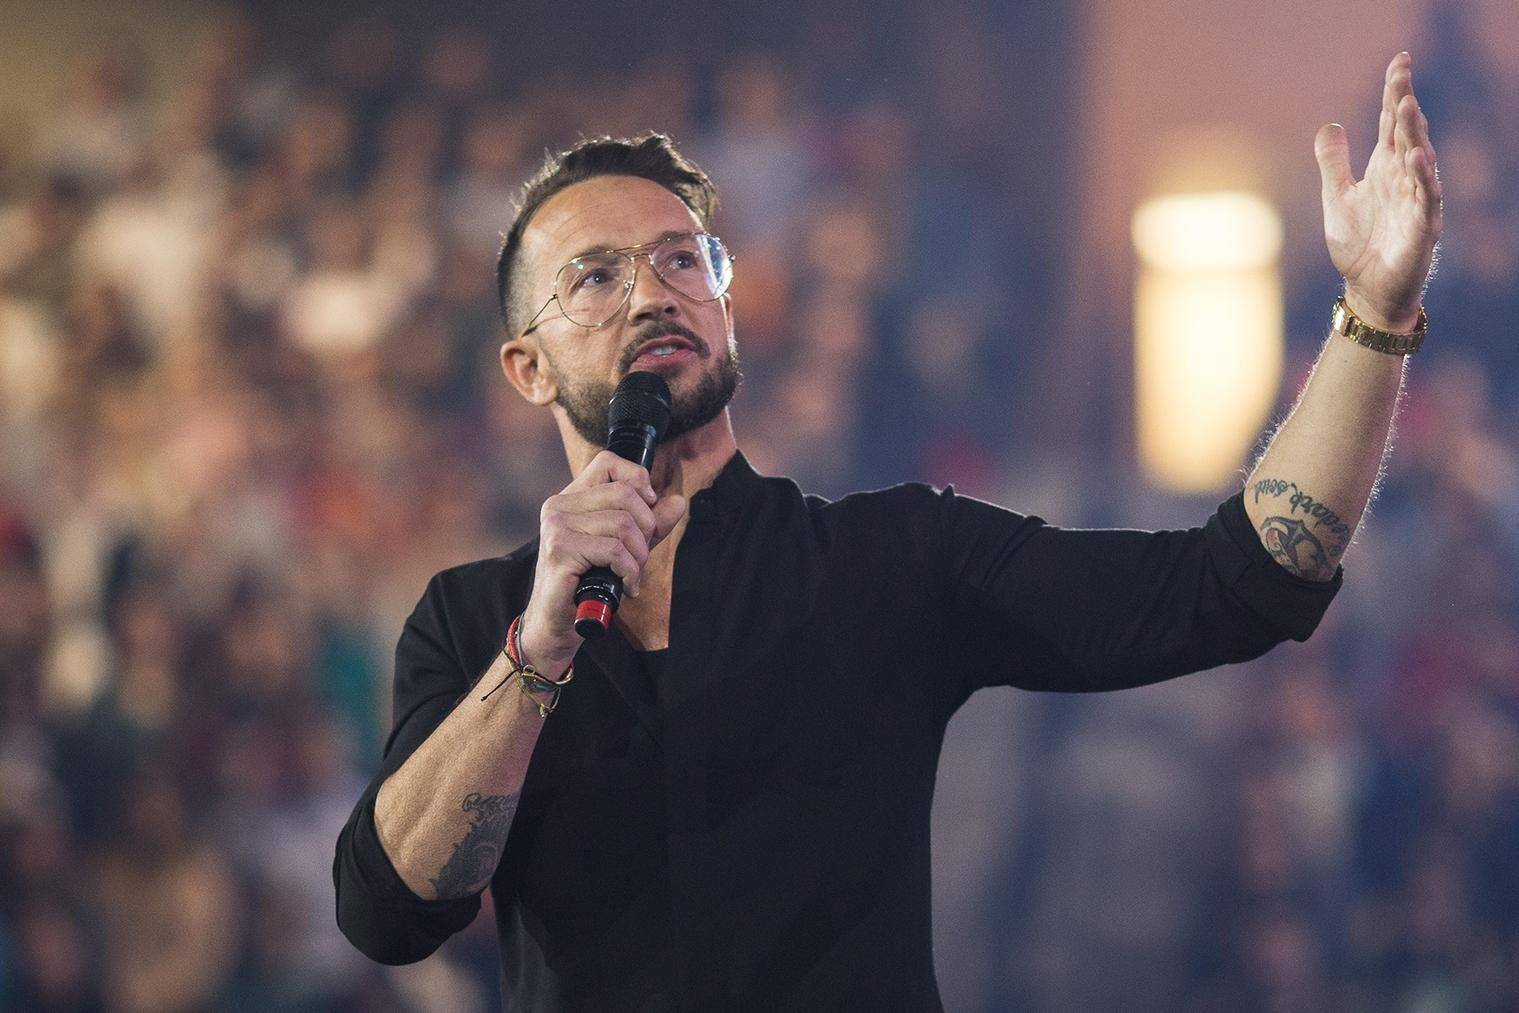 Hillsong Nyc Pastor Carl Lentz Encourages Students To Turn The Page Liberty News